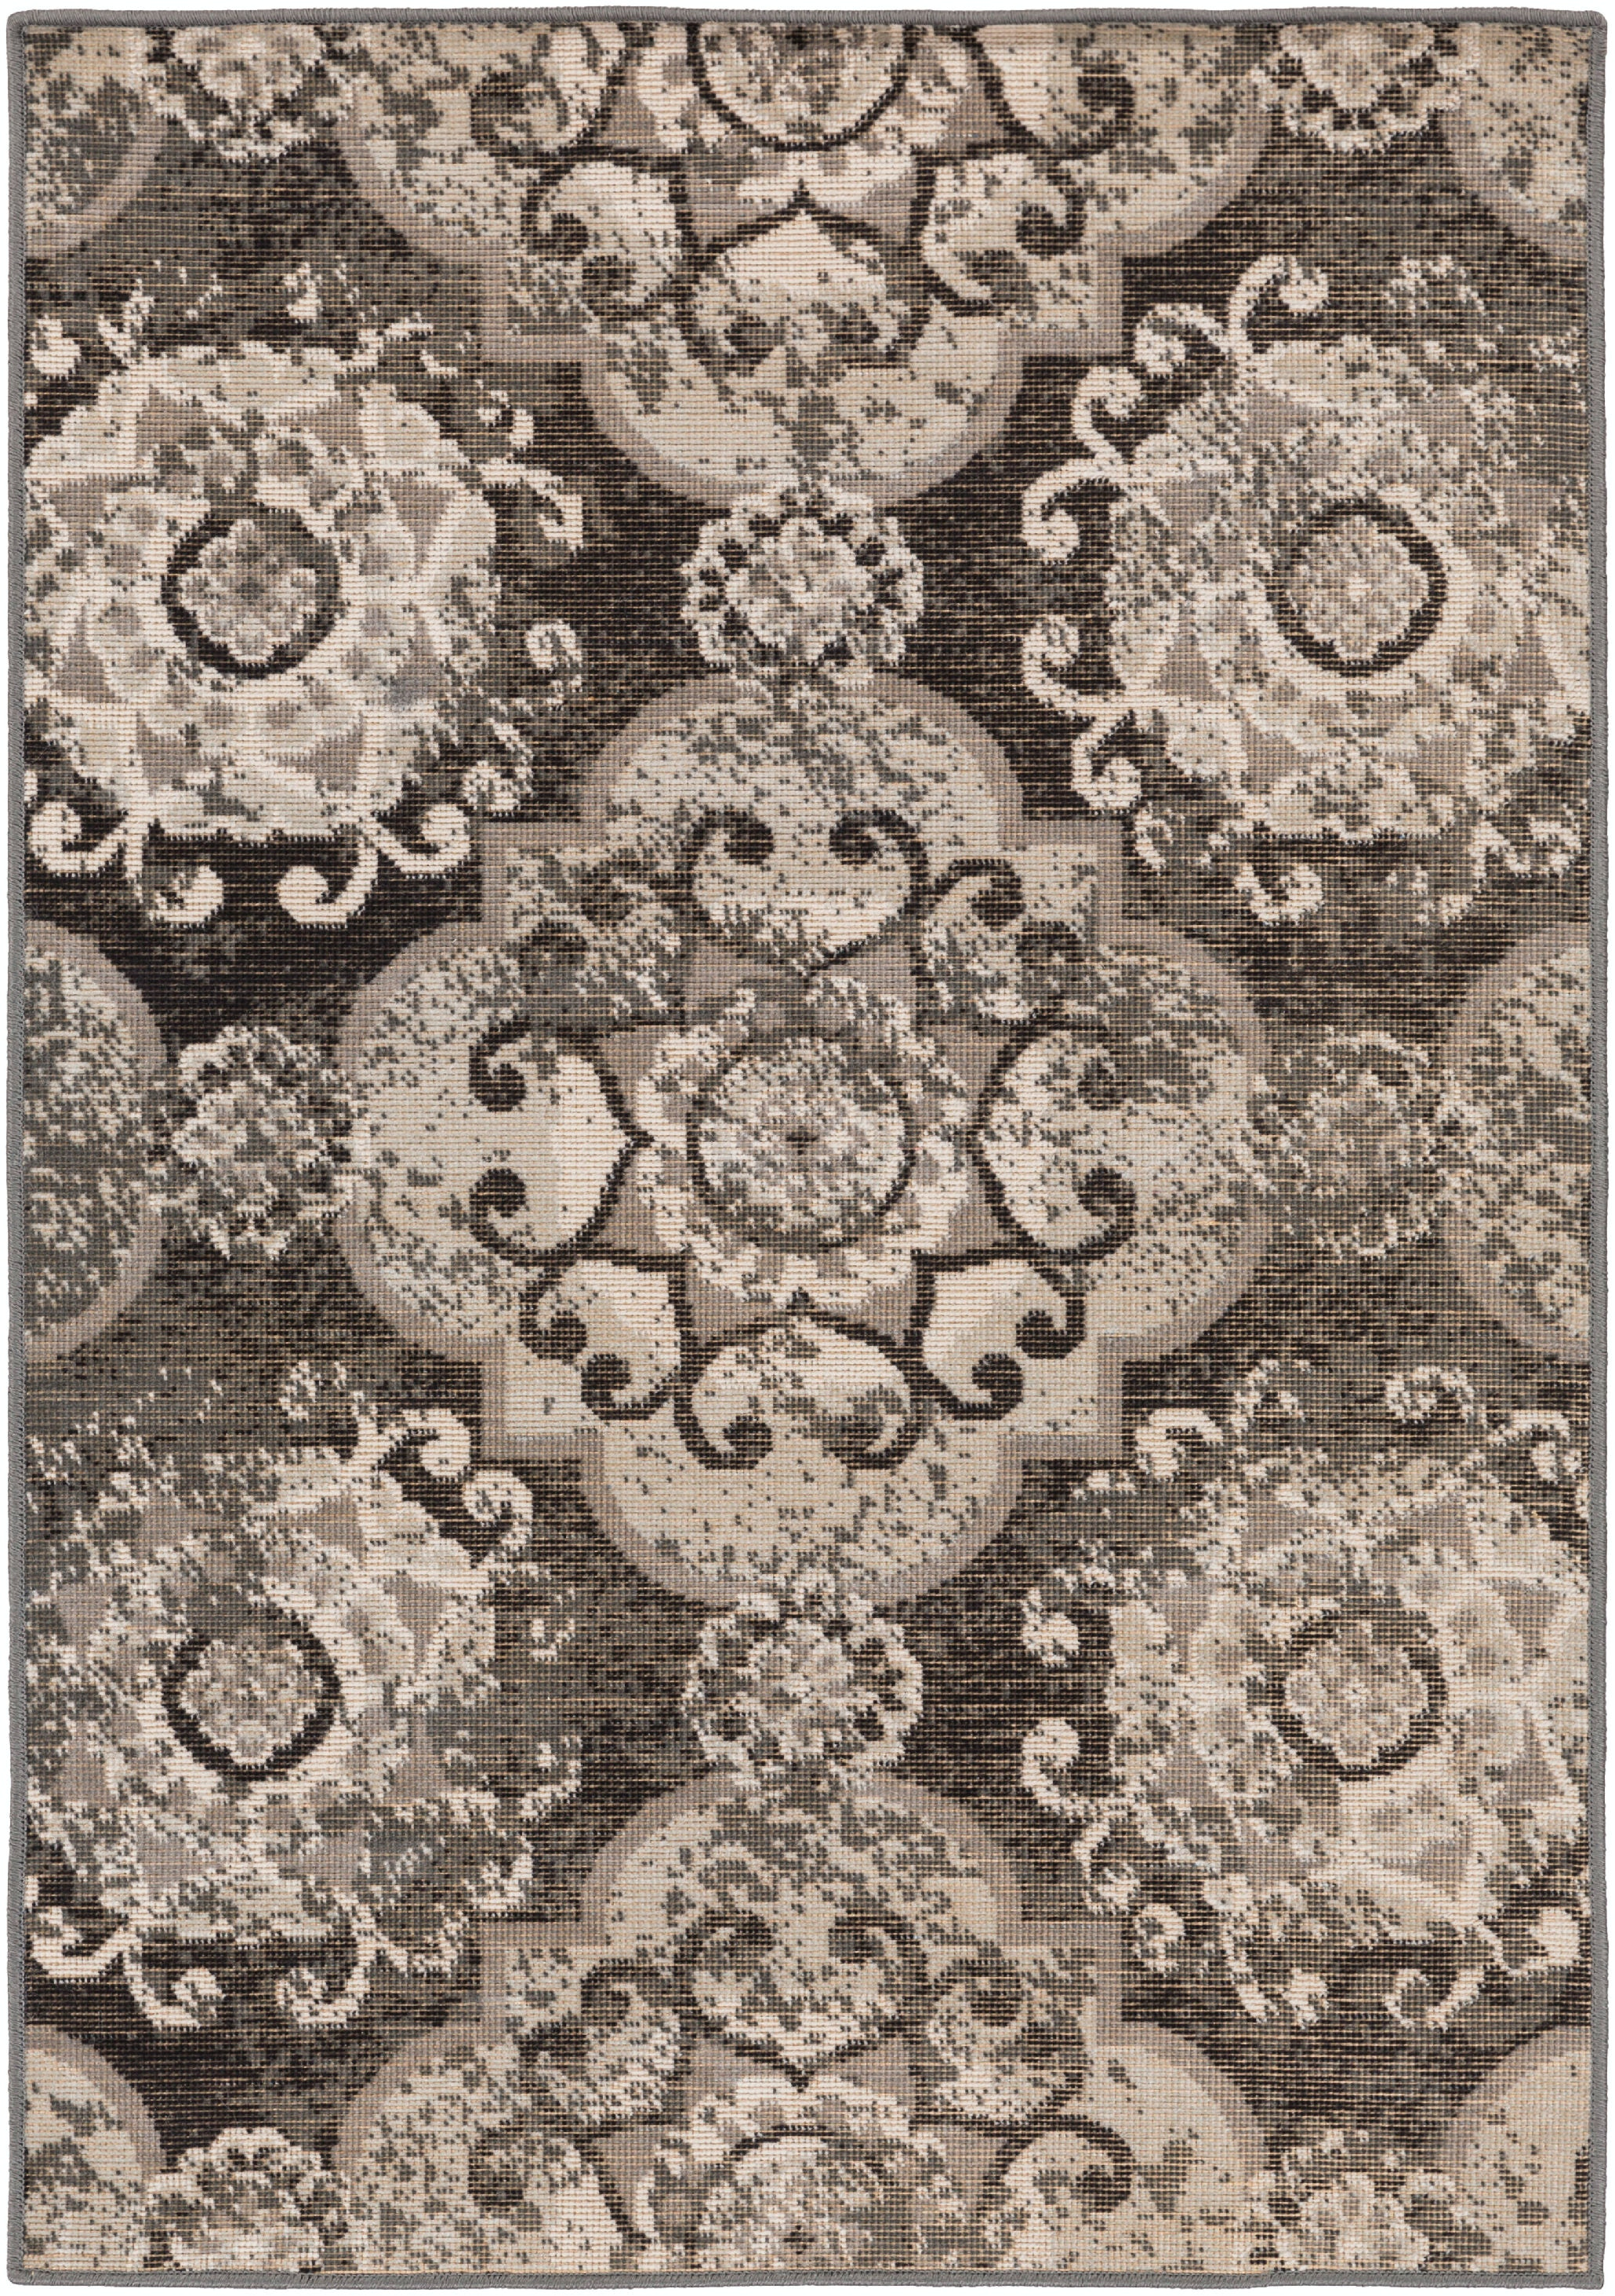 Surya Floor Coverings Mavrick 2 2 X 4 Area Rug Mav7017 224 Zing